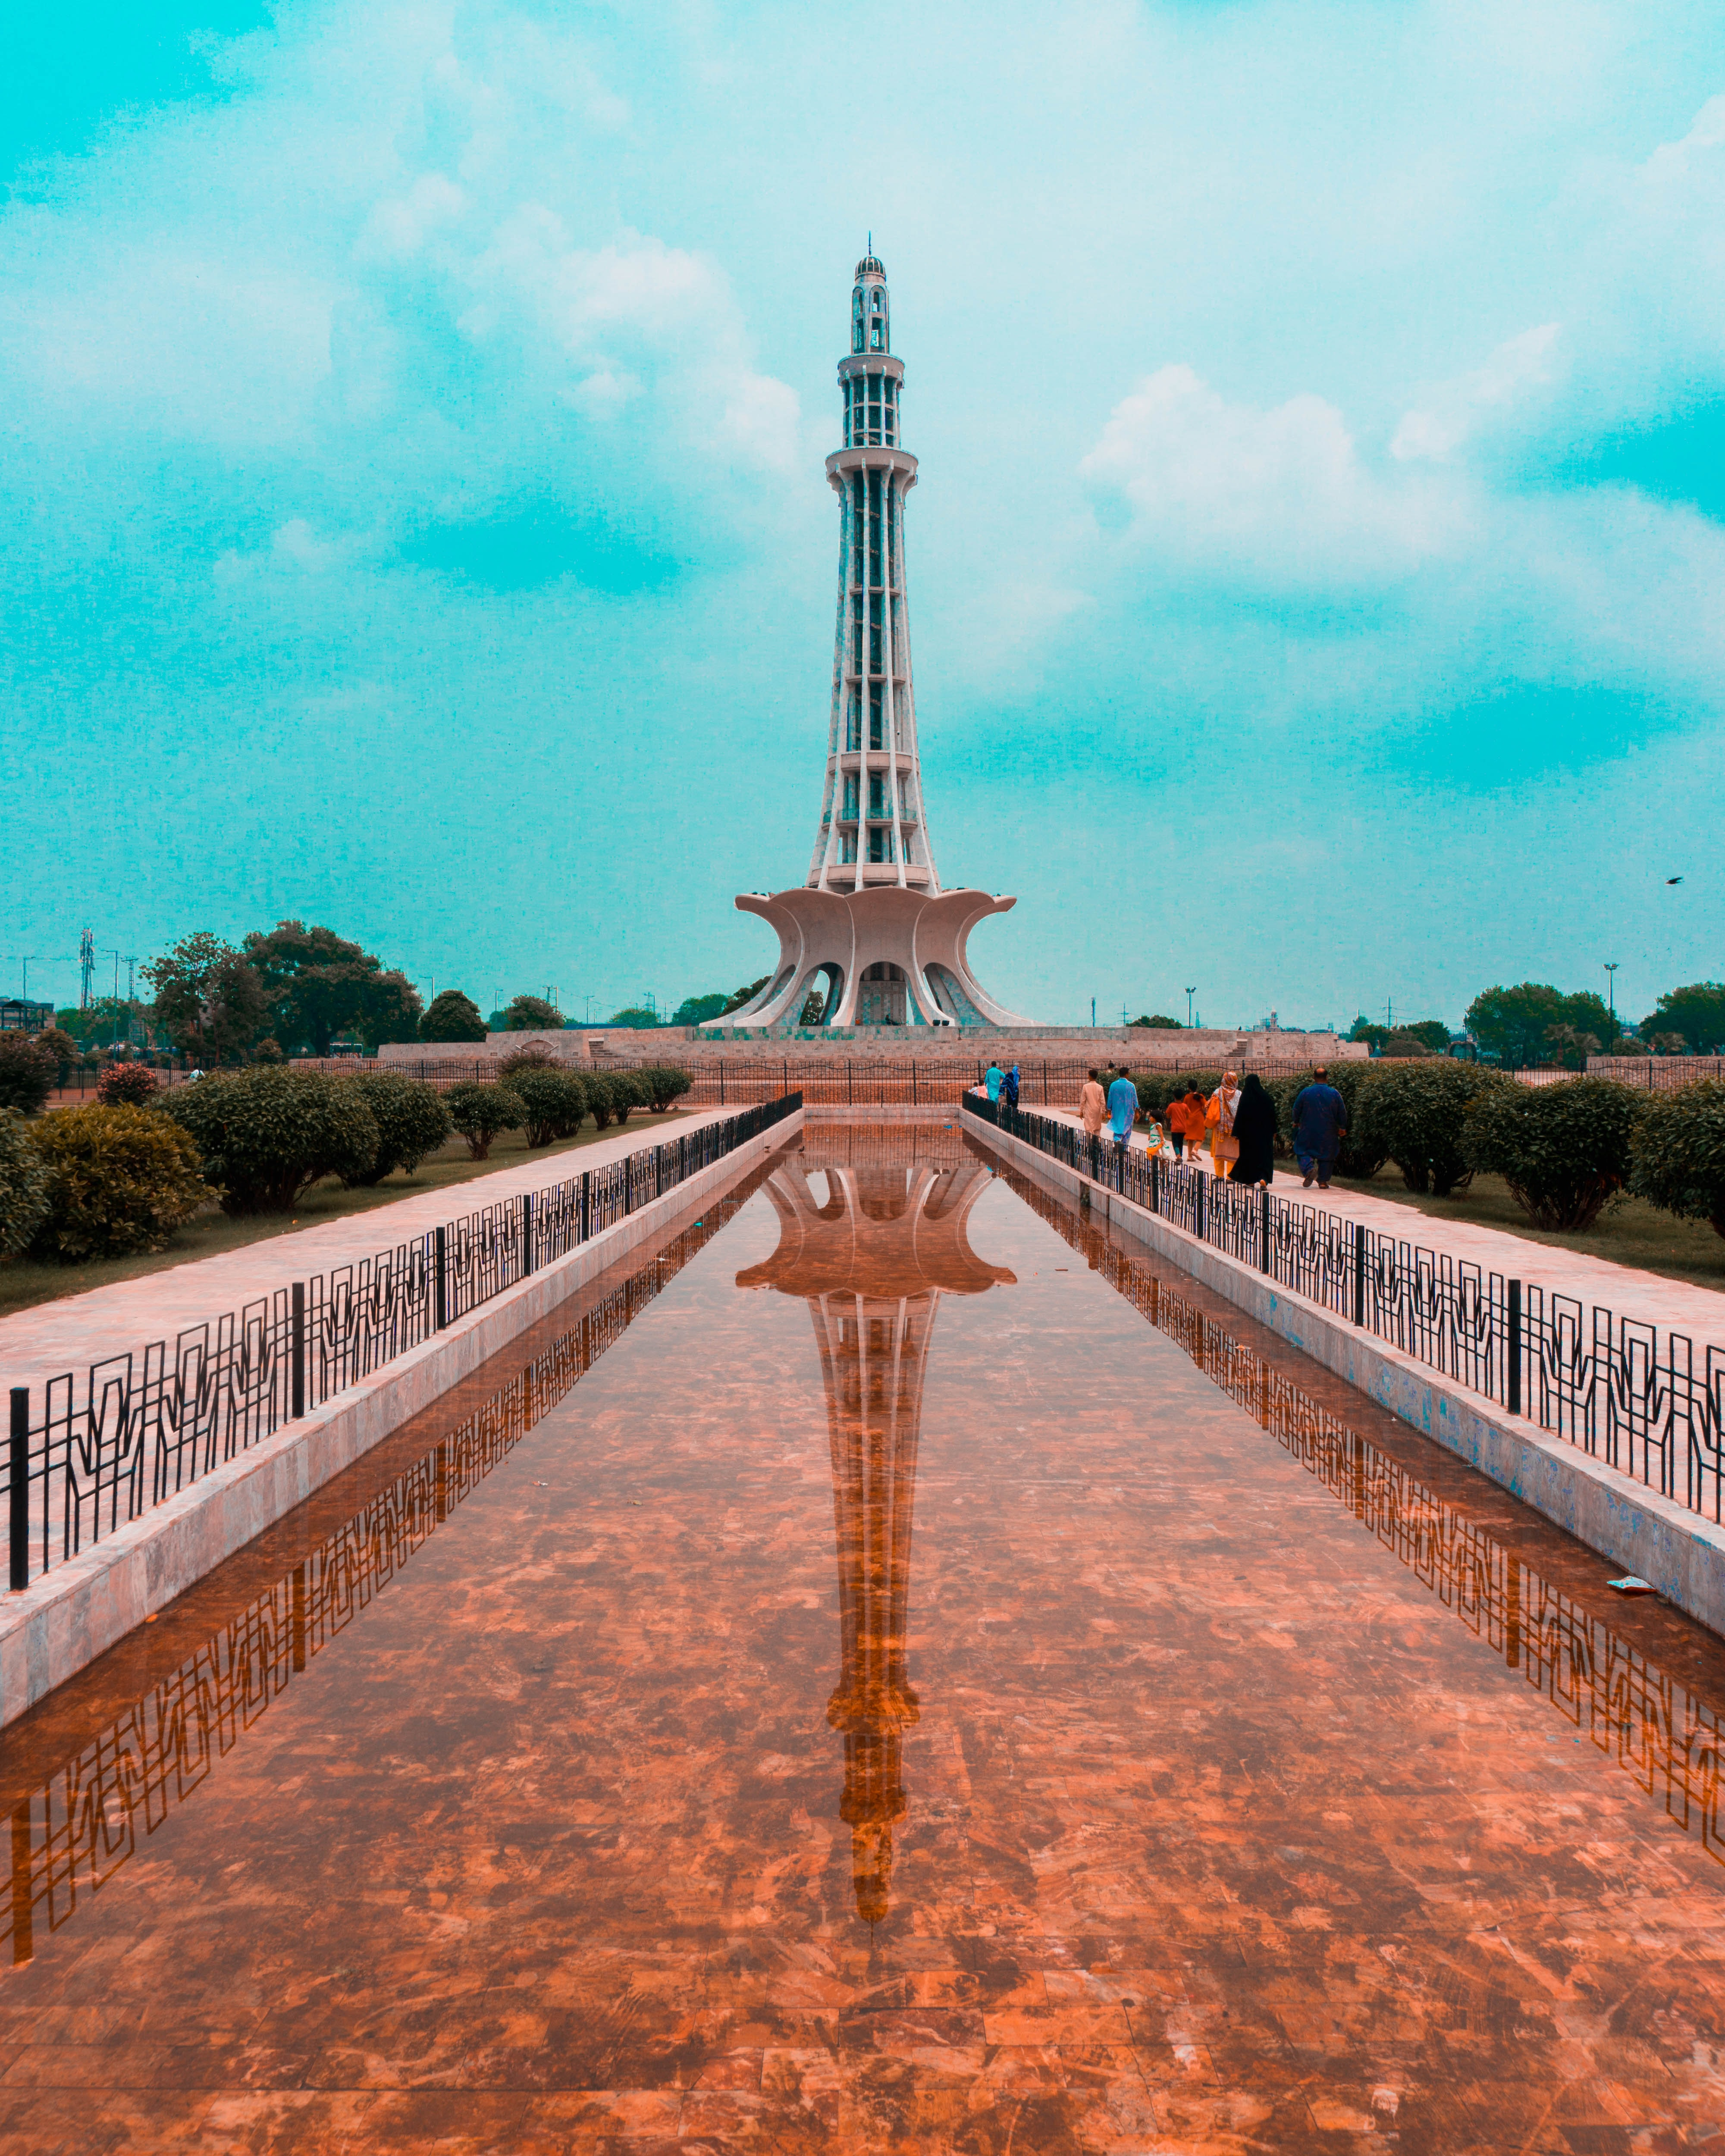 500 pakistan pictures [hd] download free images on unsplashfountain near tower during daytime